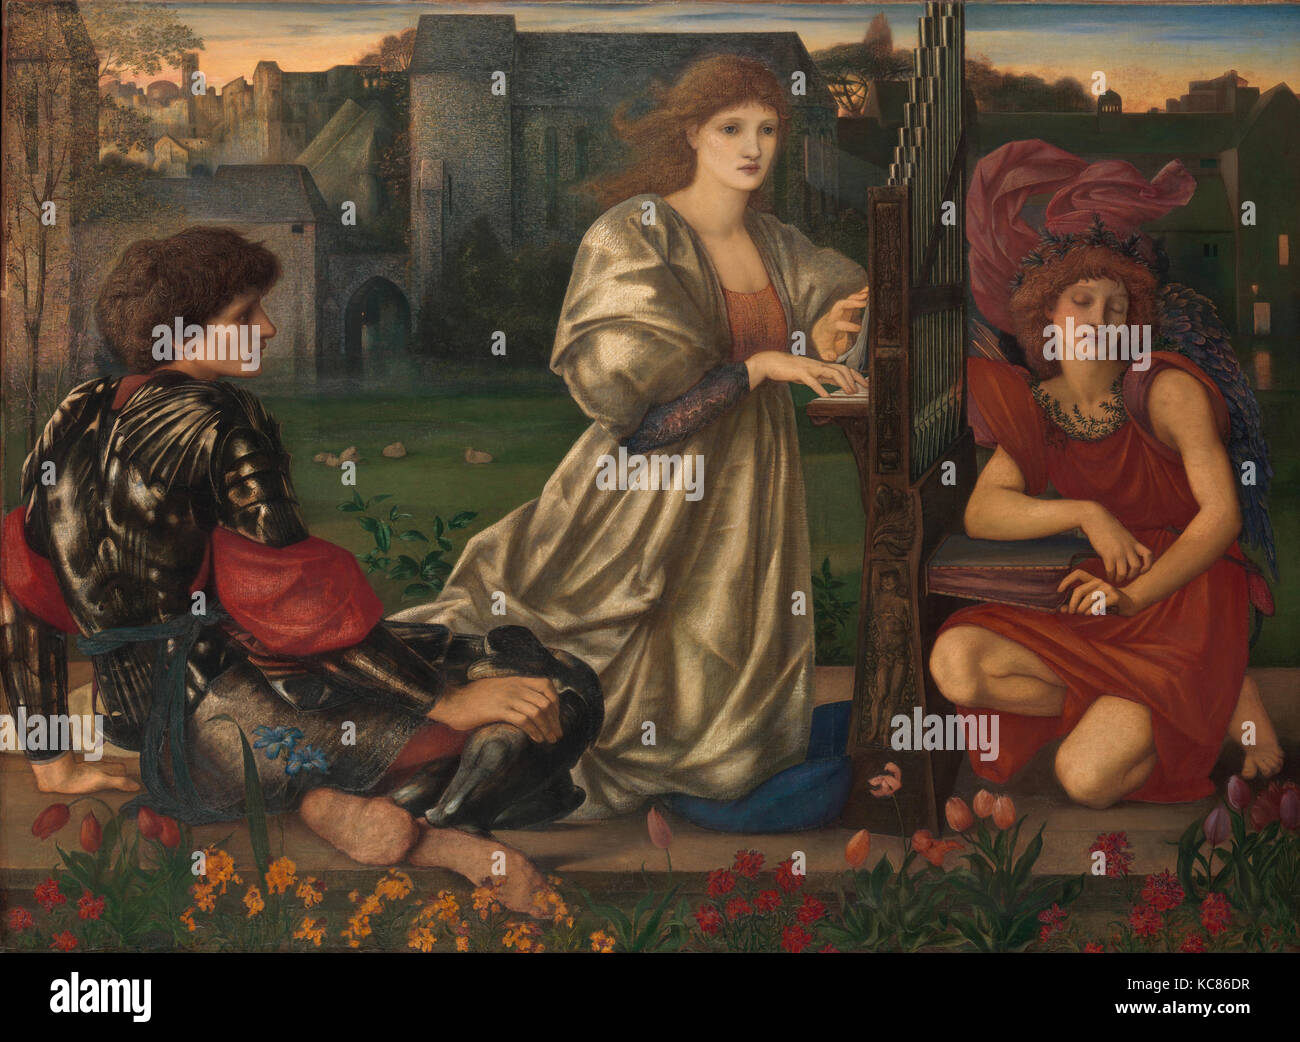 The Love Song, 1868–77, Oil on canvas, 45 x 61 3/8 in. (114.3 x 155.9 cm), Paintings, Sir Edward Burne-Jones (British Stock Photo